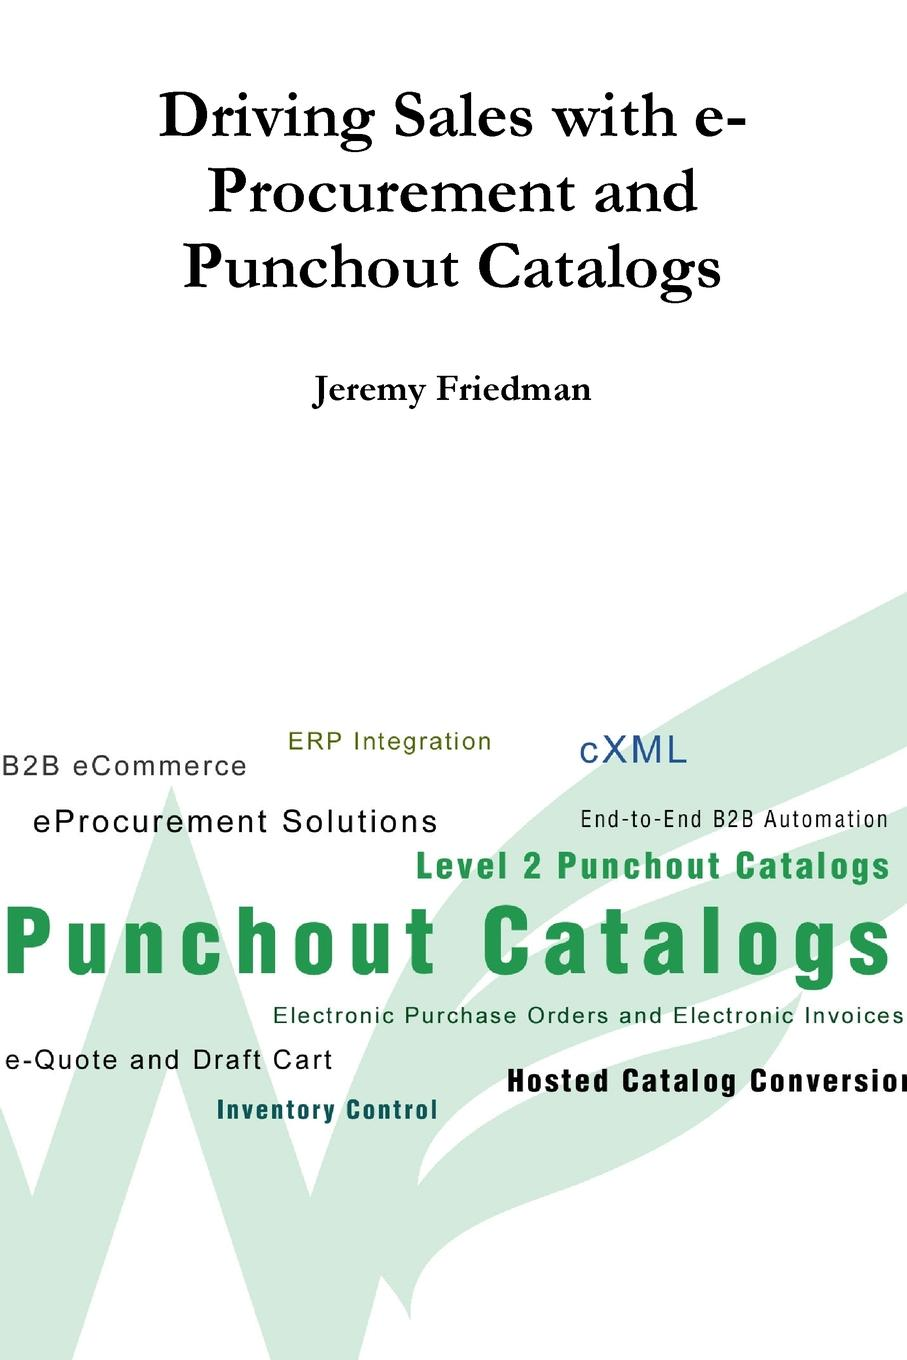 Jeremy Friedman Driving Sales with e-Procurement and Punchout Catalogs harry friedman j no thanks i m just looking sales techniques for turning shoppers into buyers